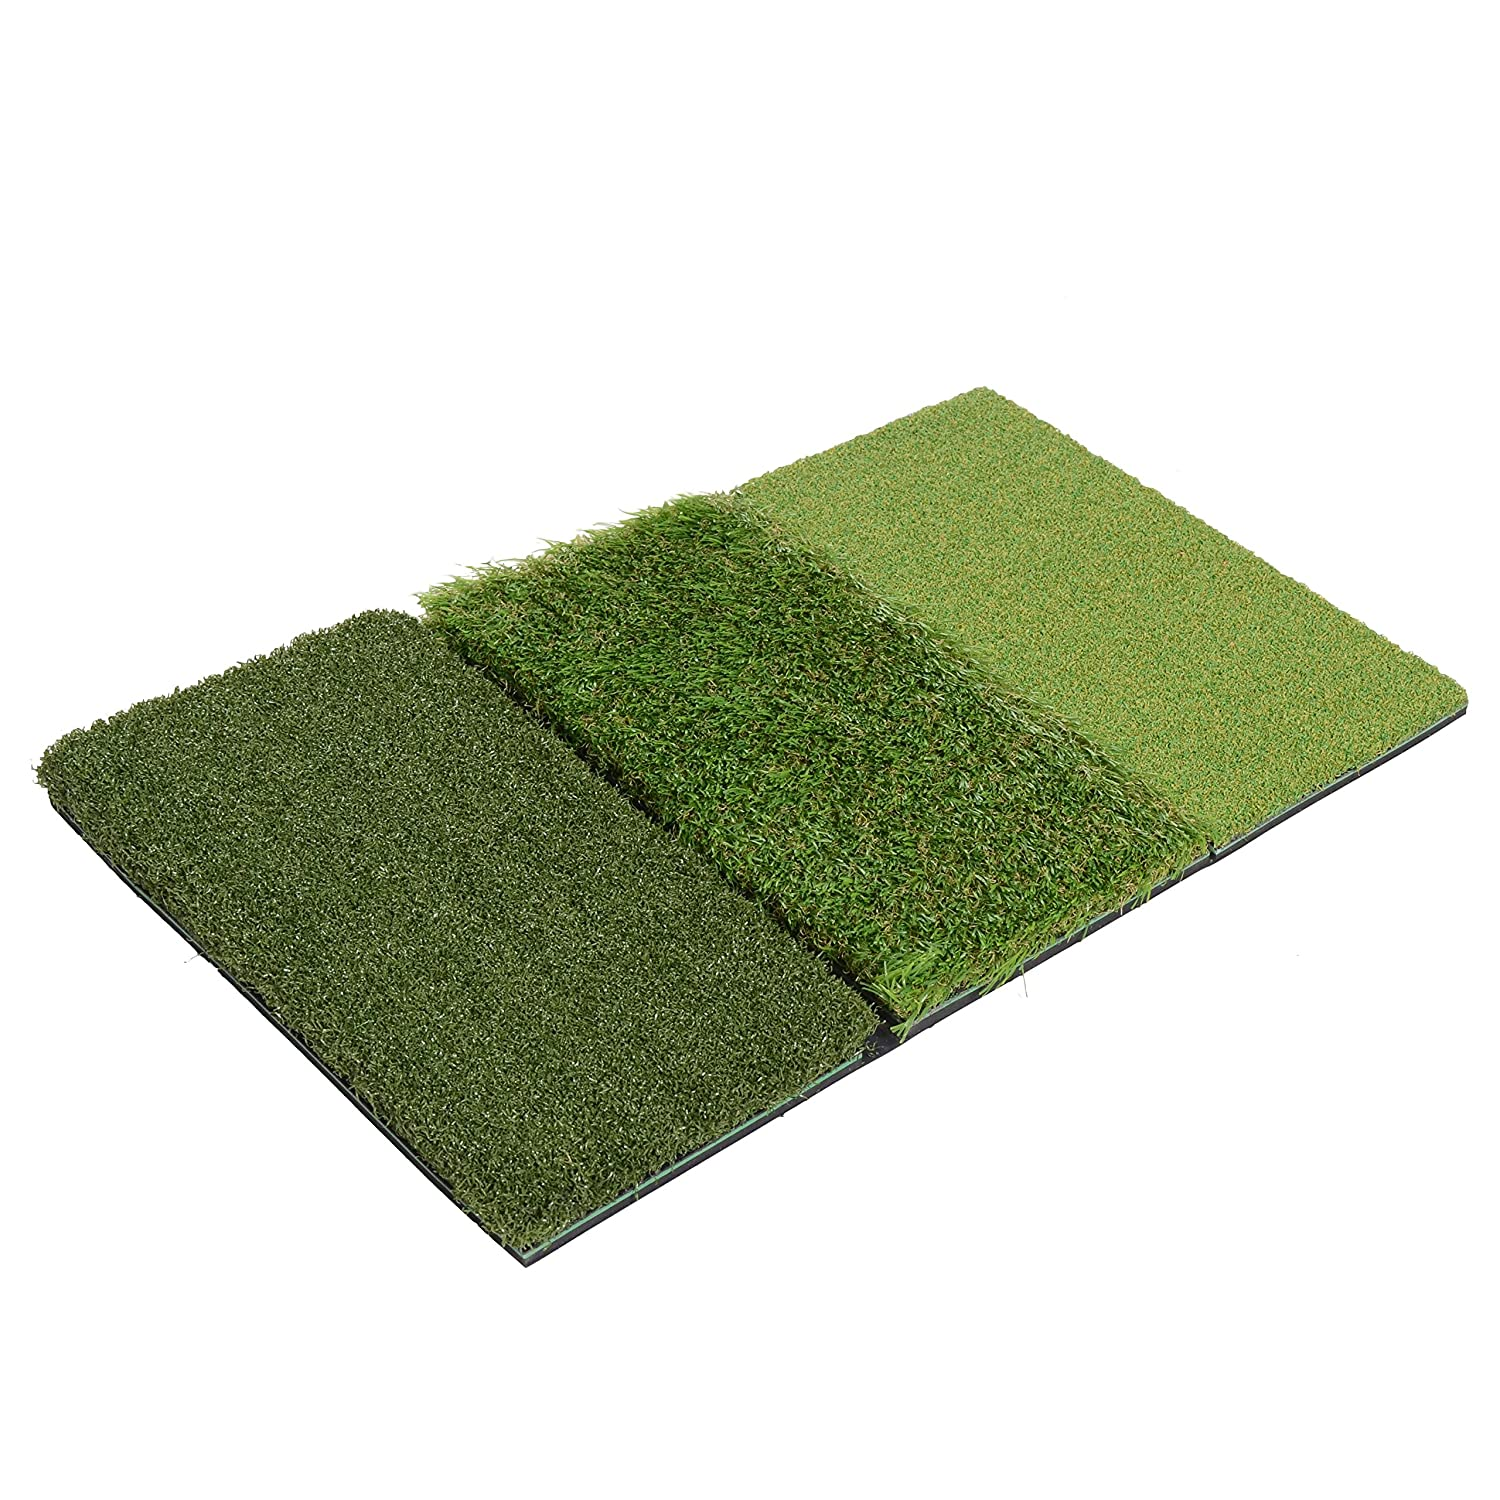 Milliard Golf 3-in-1 Turf Grass Mat Foldable Includes Tight Lie, Rough and Fairway for Driving, Chipping, and Putting Golf Practice and Training – 25×16 inches.